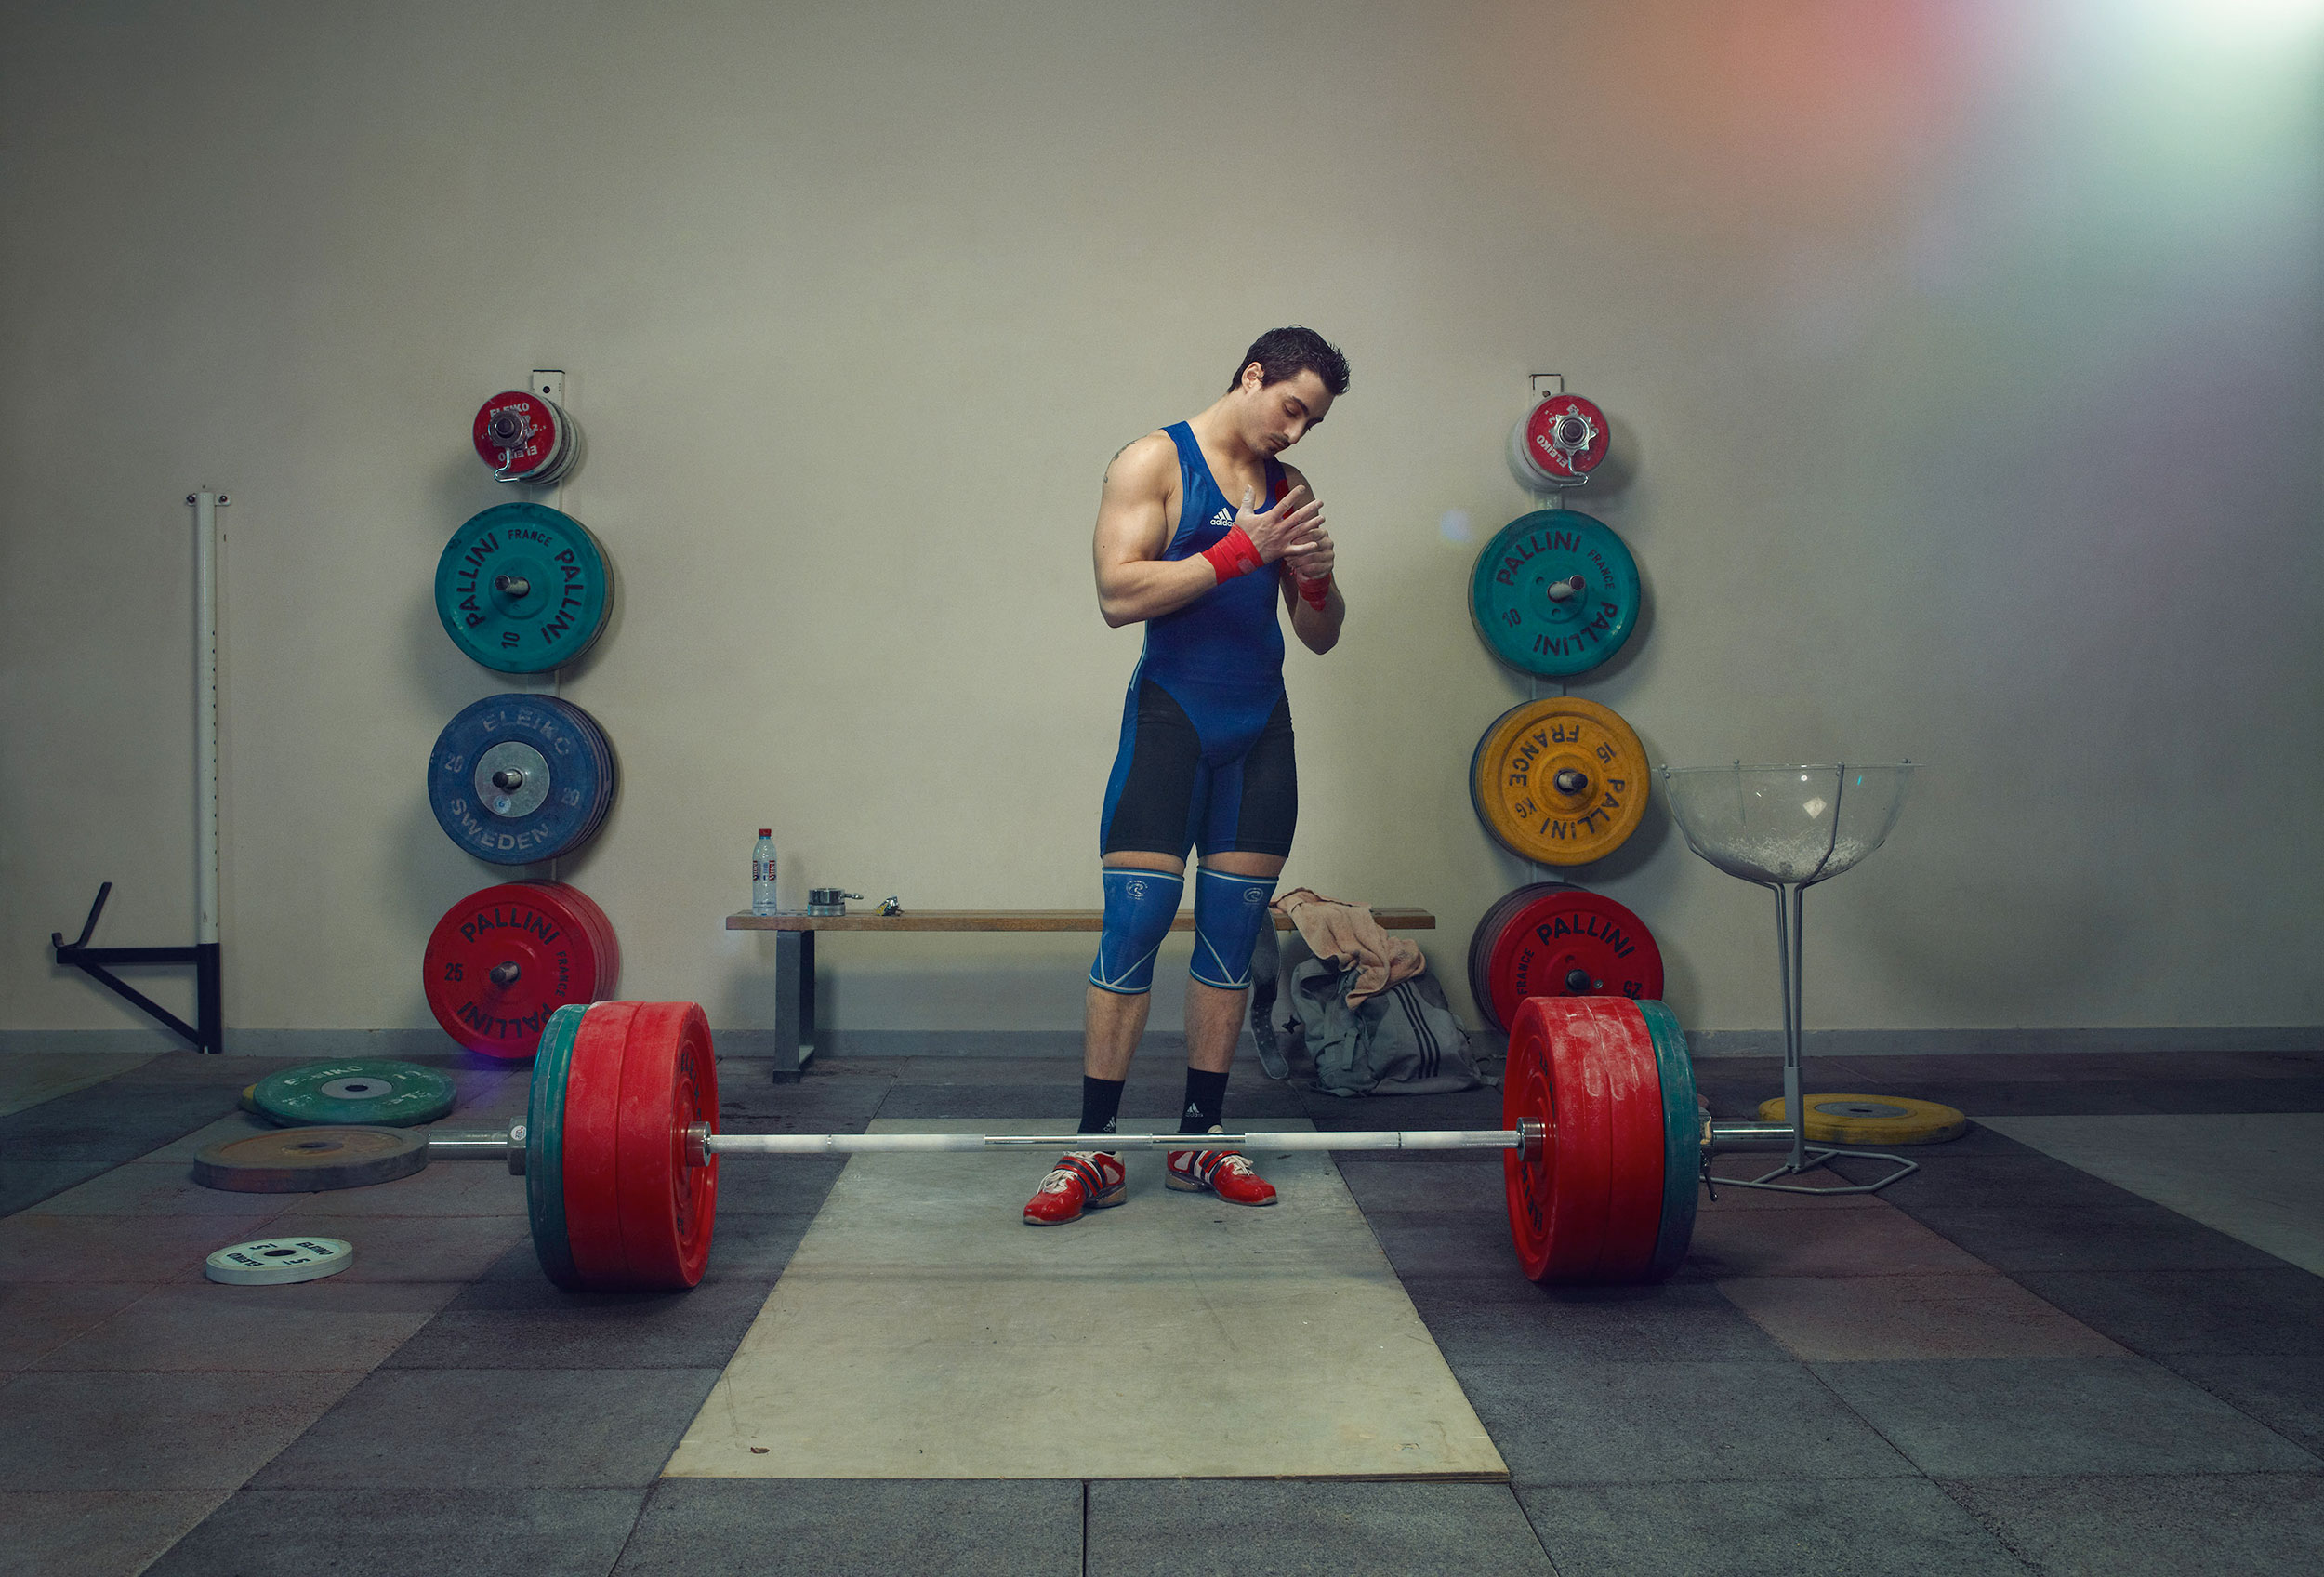 WeightLift Training, Olympic Game, Personal